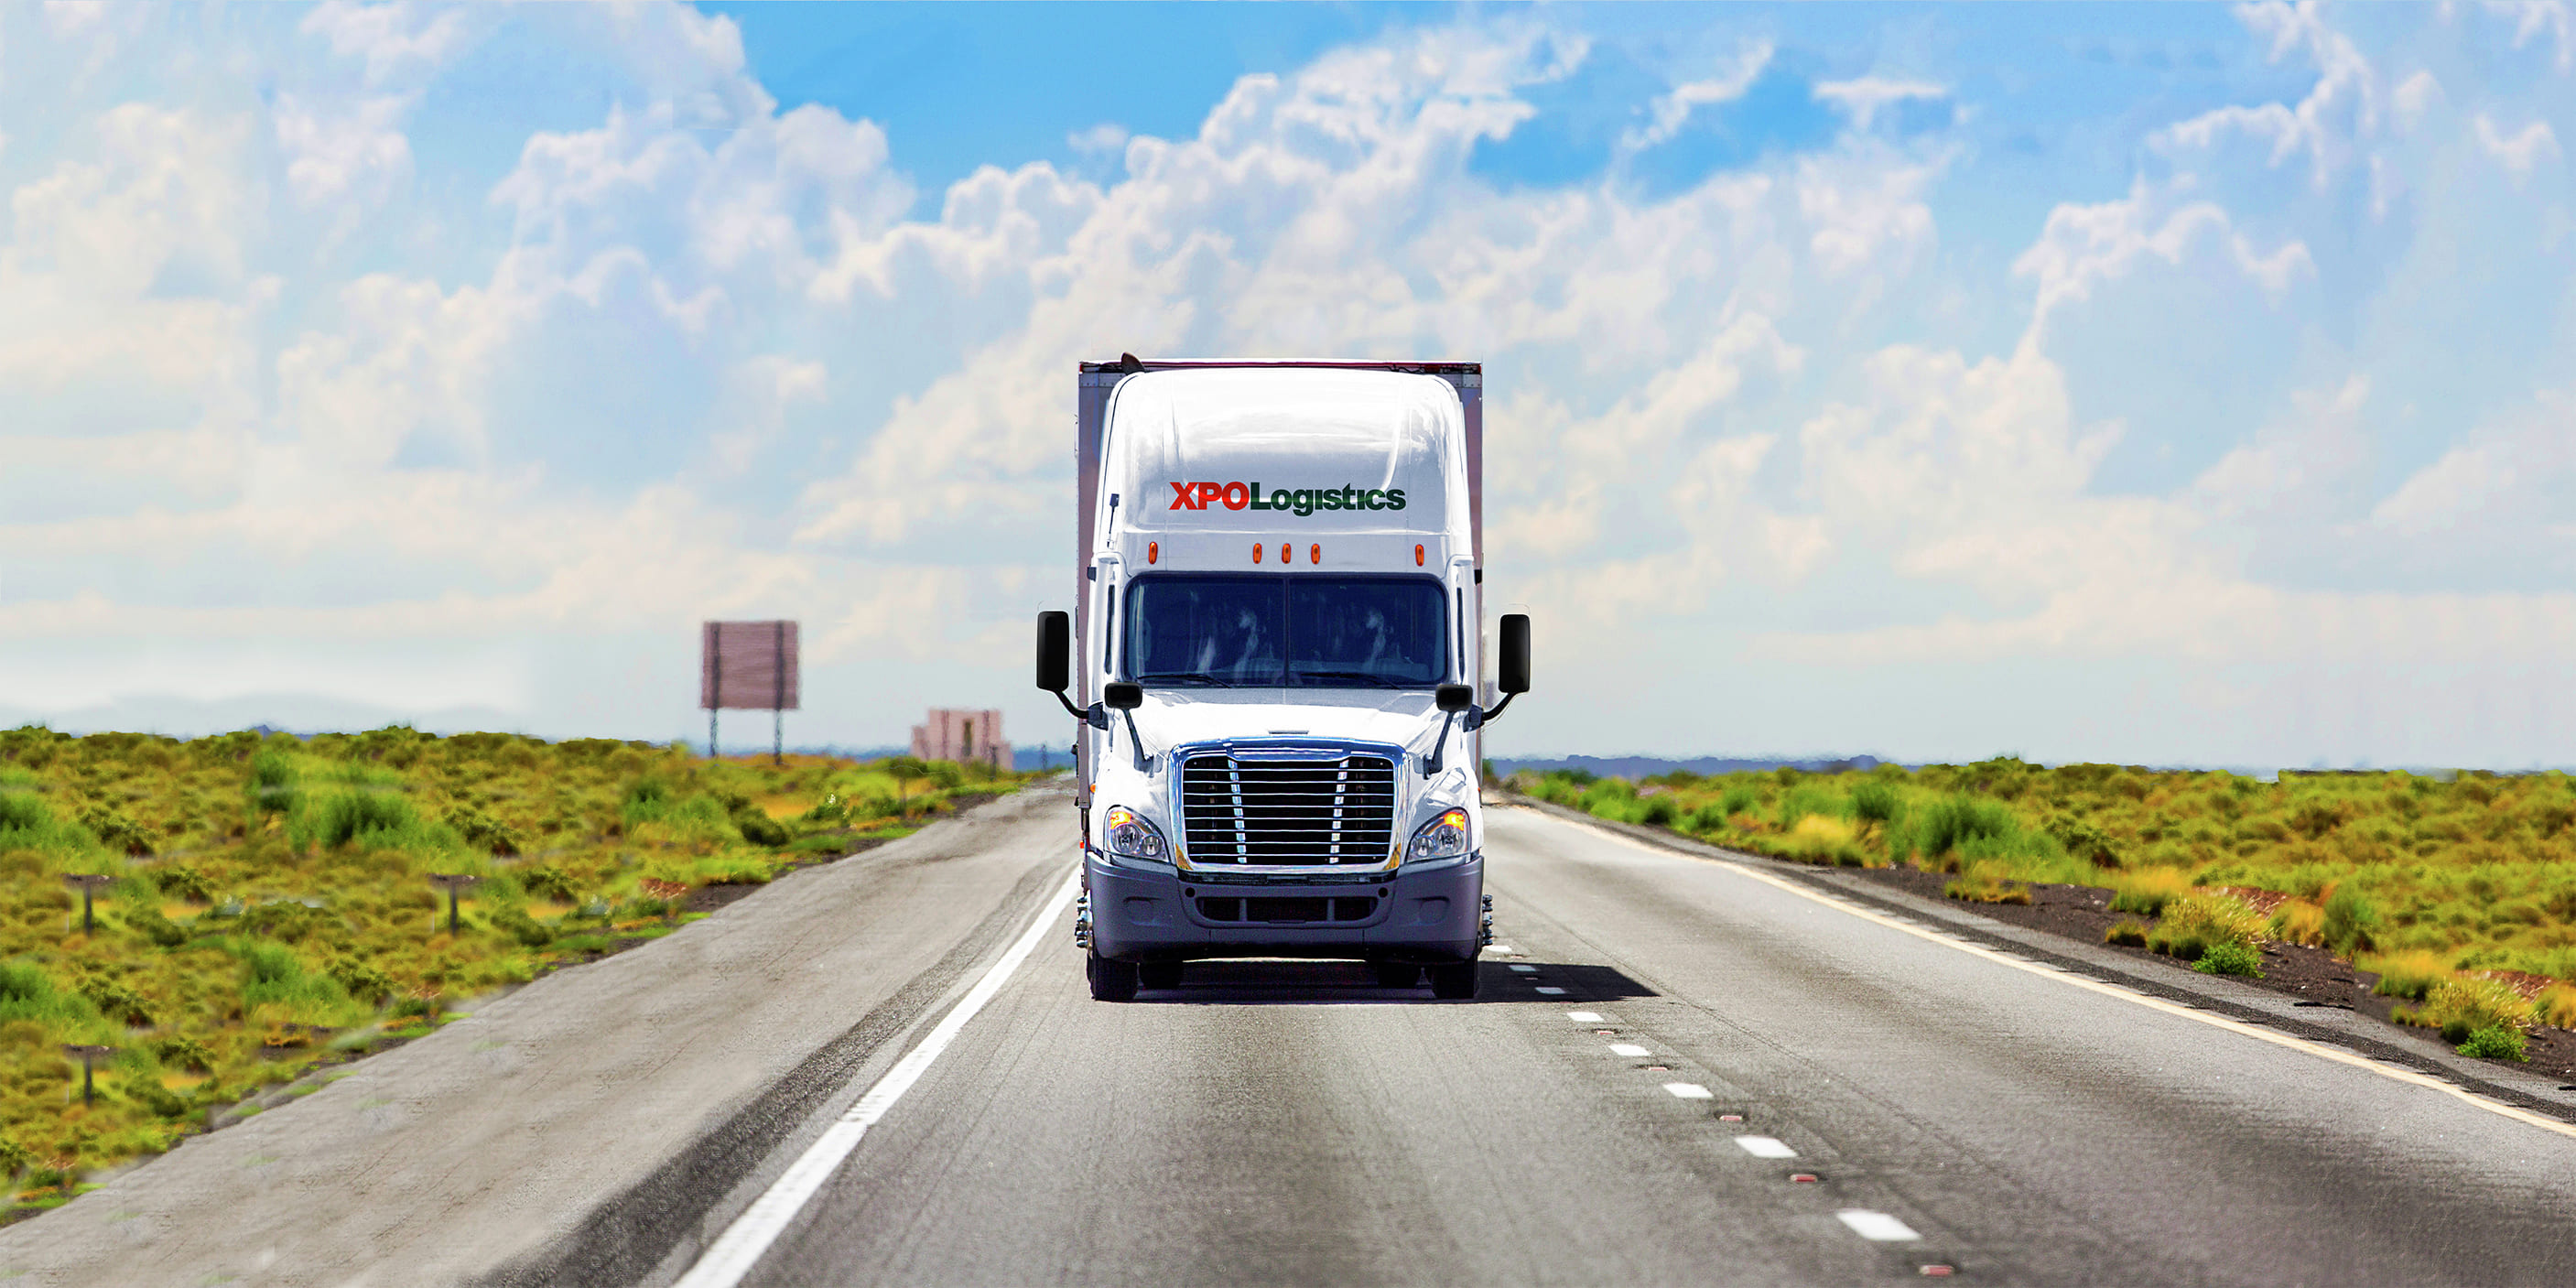 Xpo equipment on road extended 1